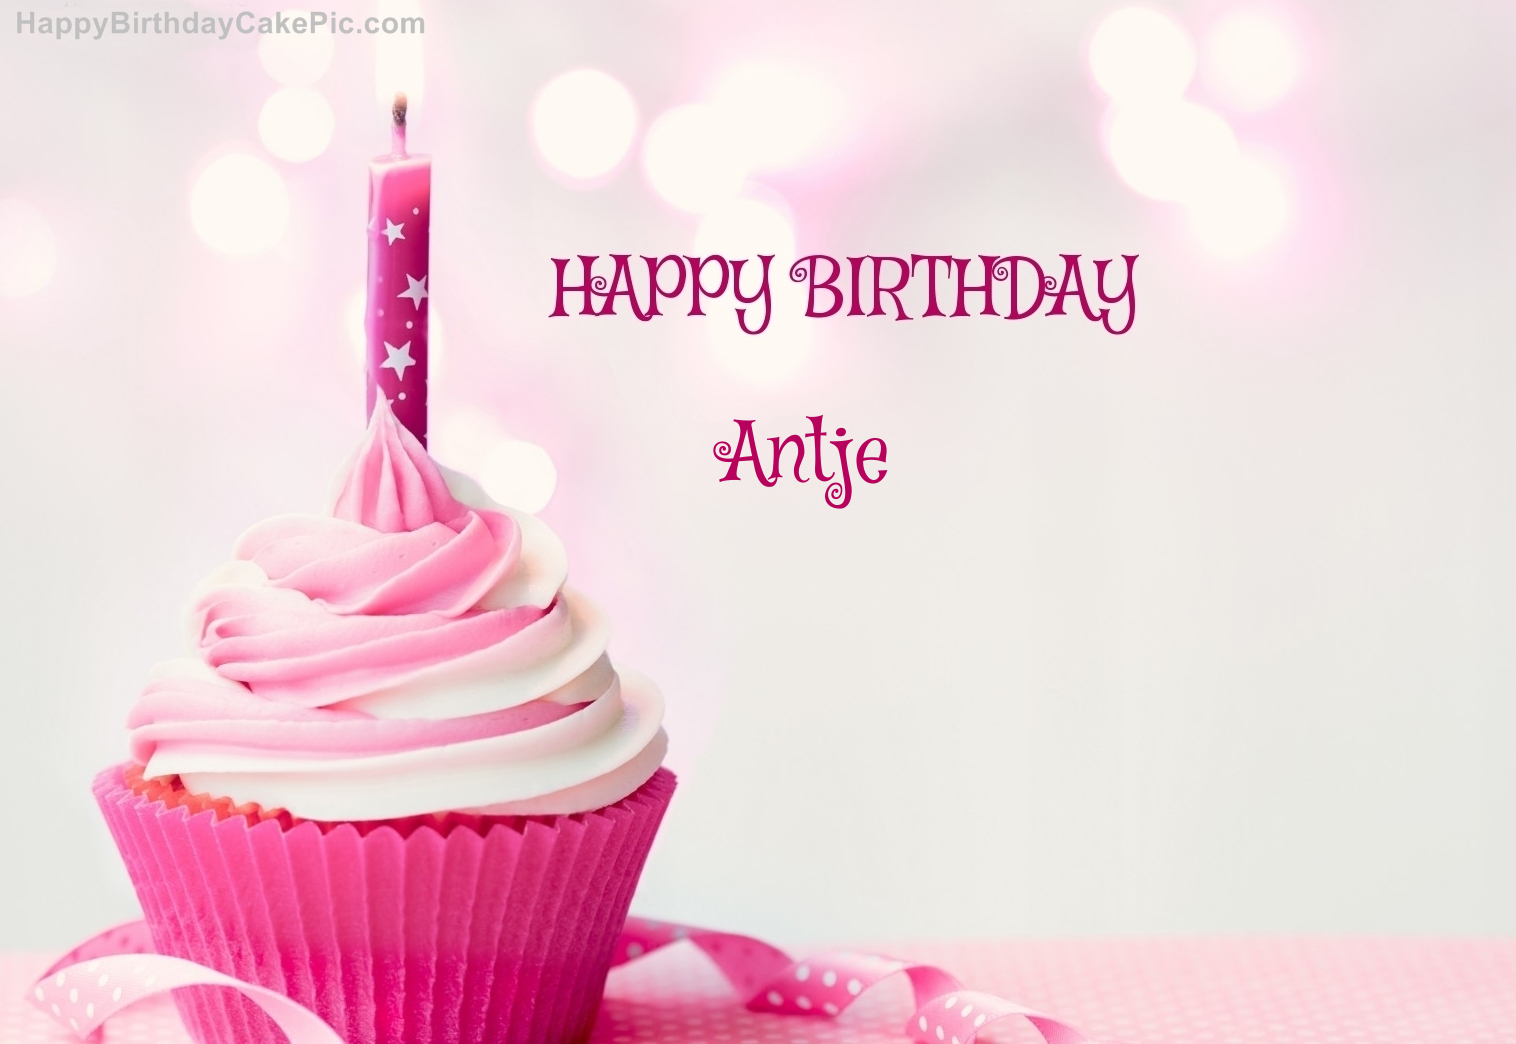 Happy Birthday Cupcake Candle Pink Cake For Antje